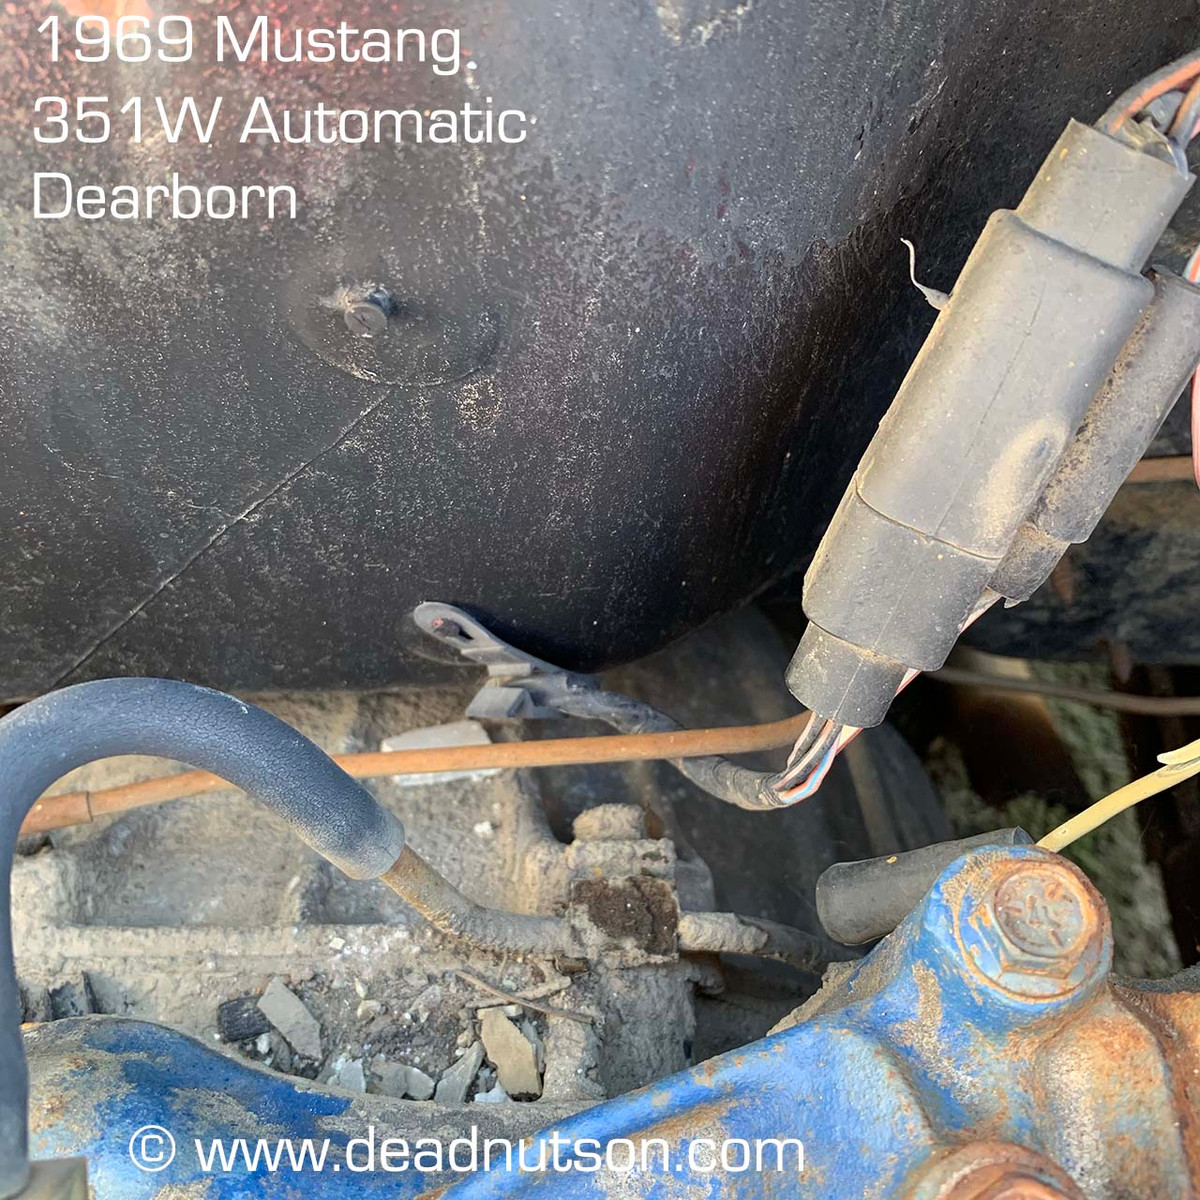 68 mustang engine wiring harness 1967 70 firewall wire harness clip dead nuts on  1967 70 firewall wire harness clip